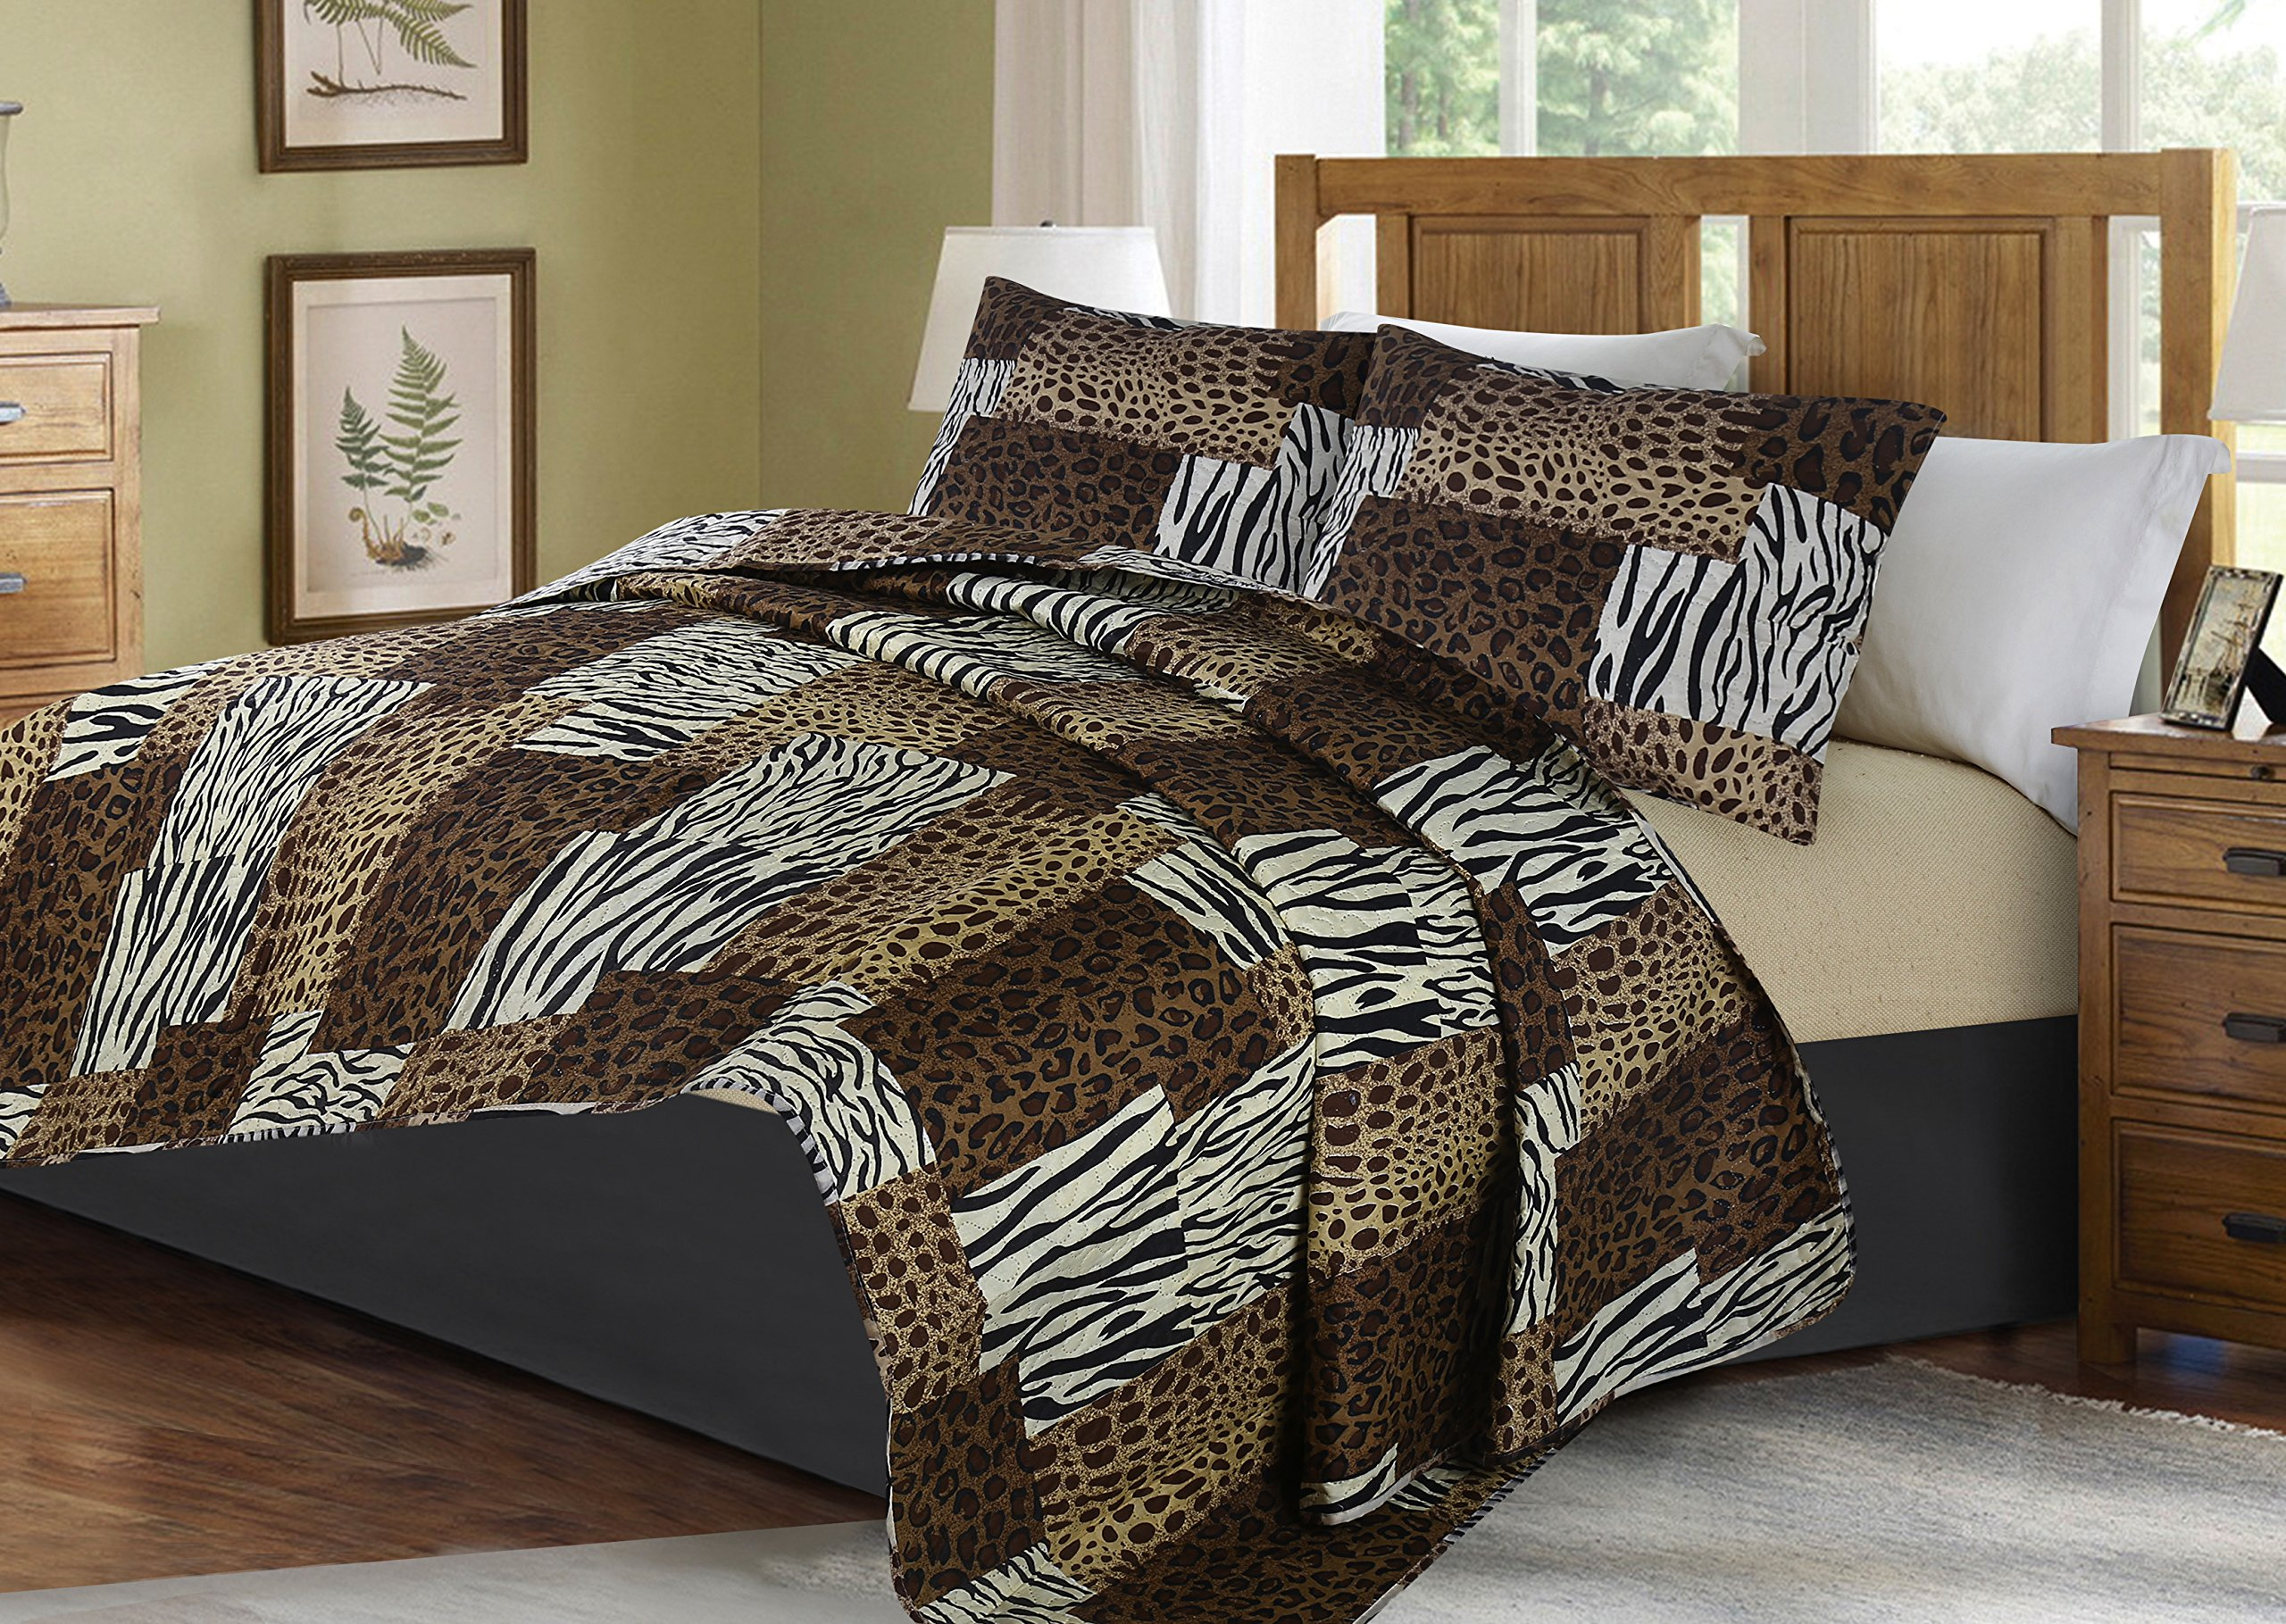 GorgeousHome African Wild Jungle Animals Bedroom Printed Quilt Bedspread Pinsonic Bed Dressing Bedding Cover 2/3pc Set in 3 Sizes Assorted (ANIMAL #5 ZEBRA, QUEEN)